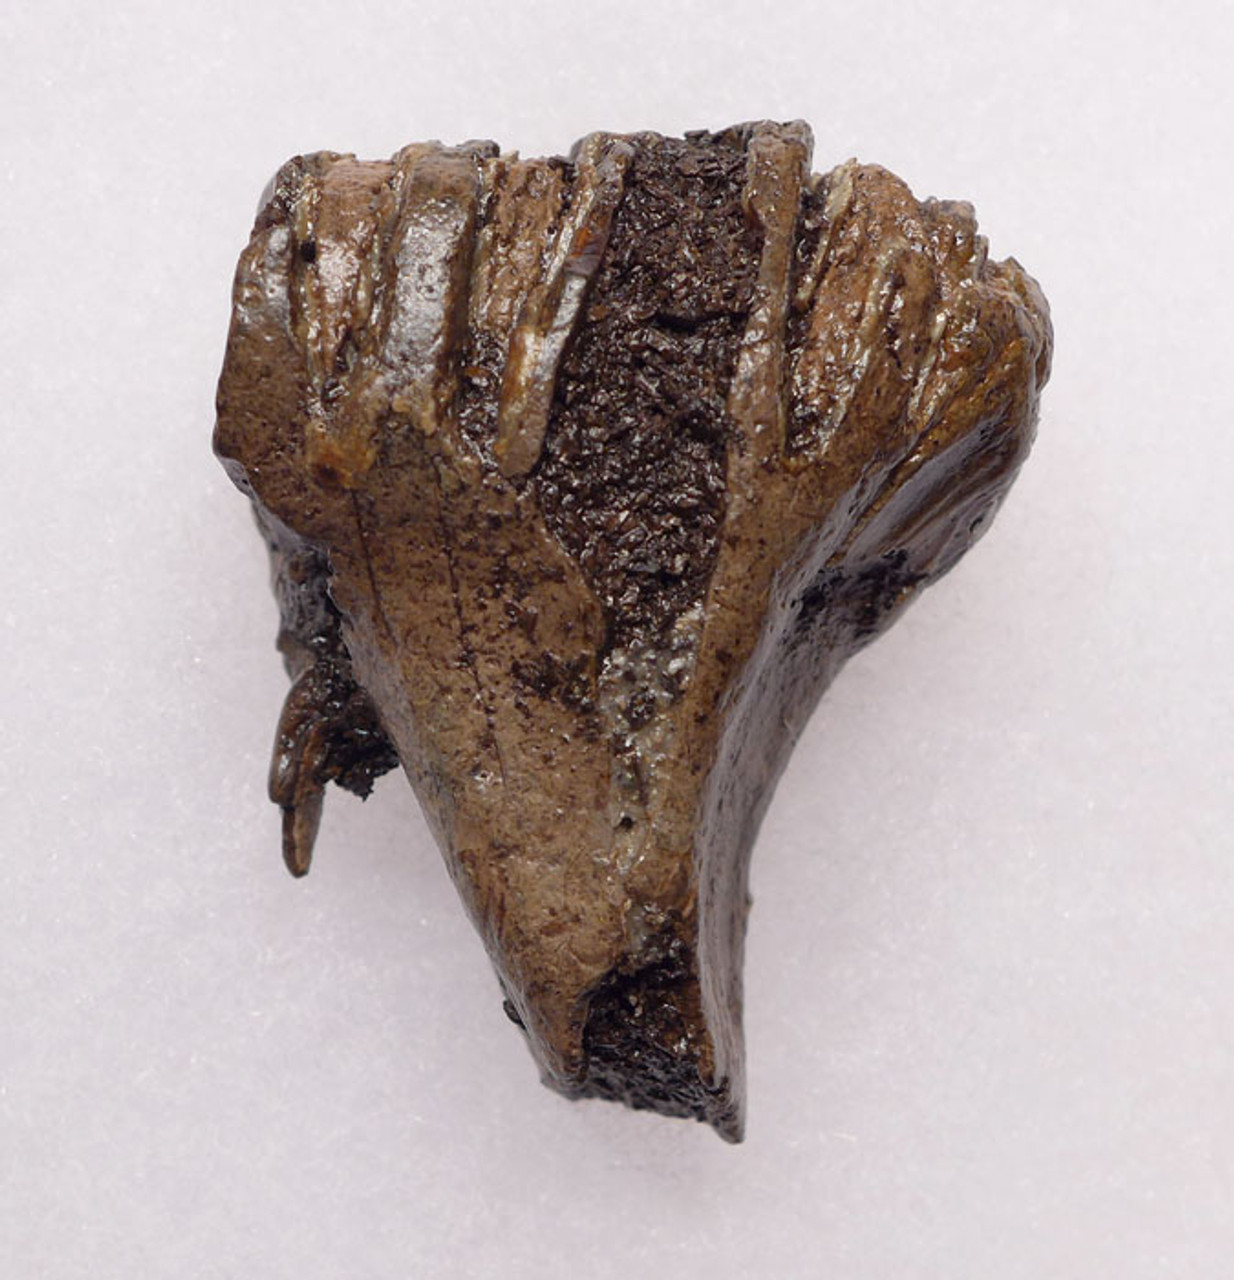 MTB004 - EXTREMELY RARE BABY CALF MERIDIONALIS SOUTHERN MAMMOTH TOOTH OF EUROPEAN ORIGIN